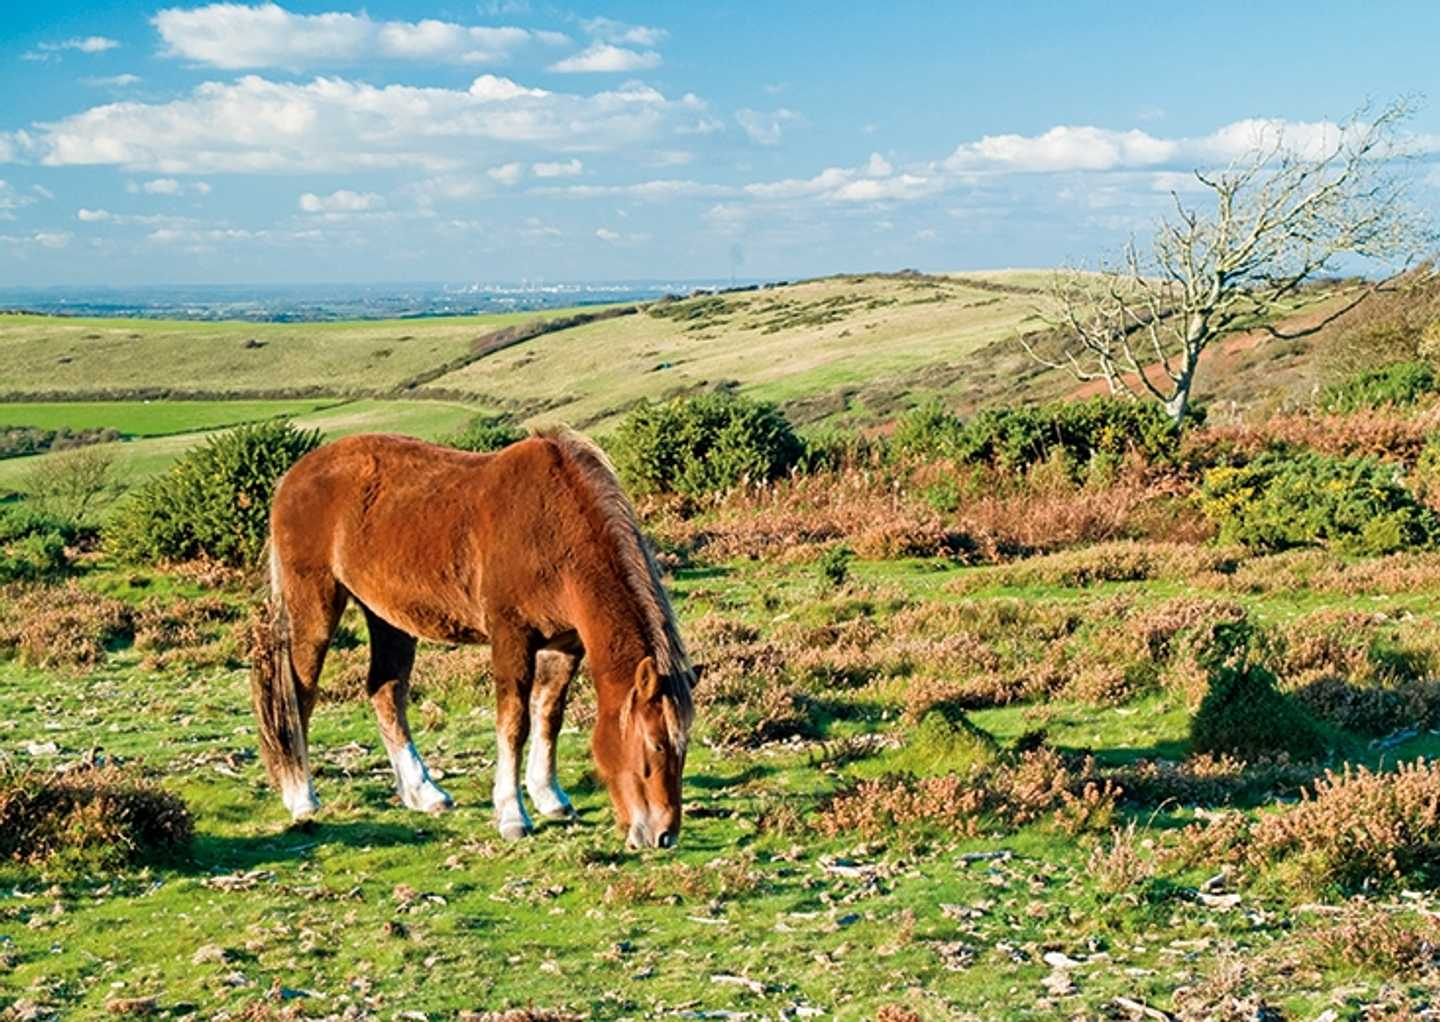 A horse grazing in the field of the New Forest